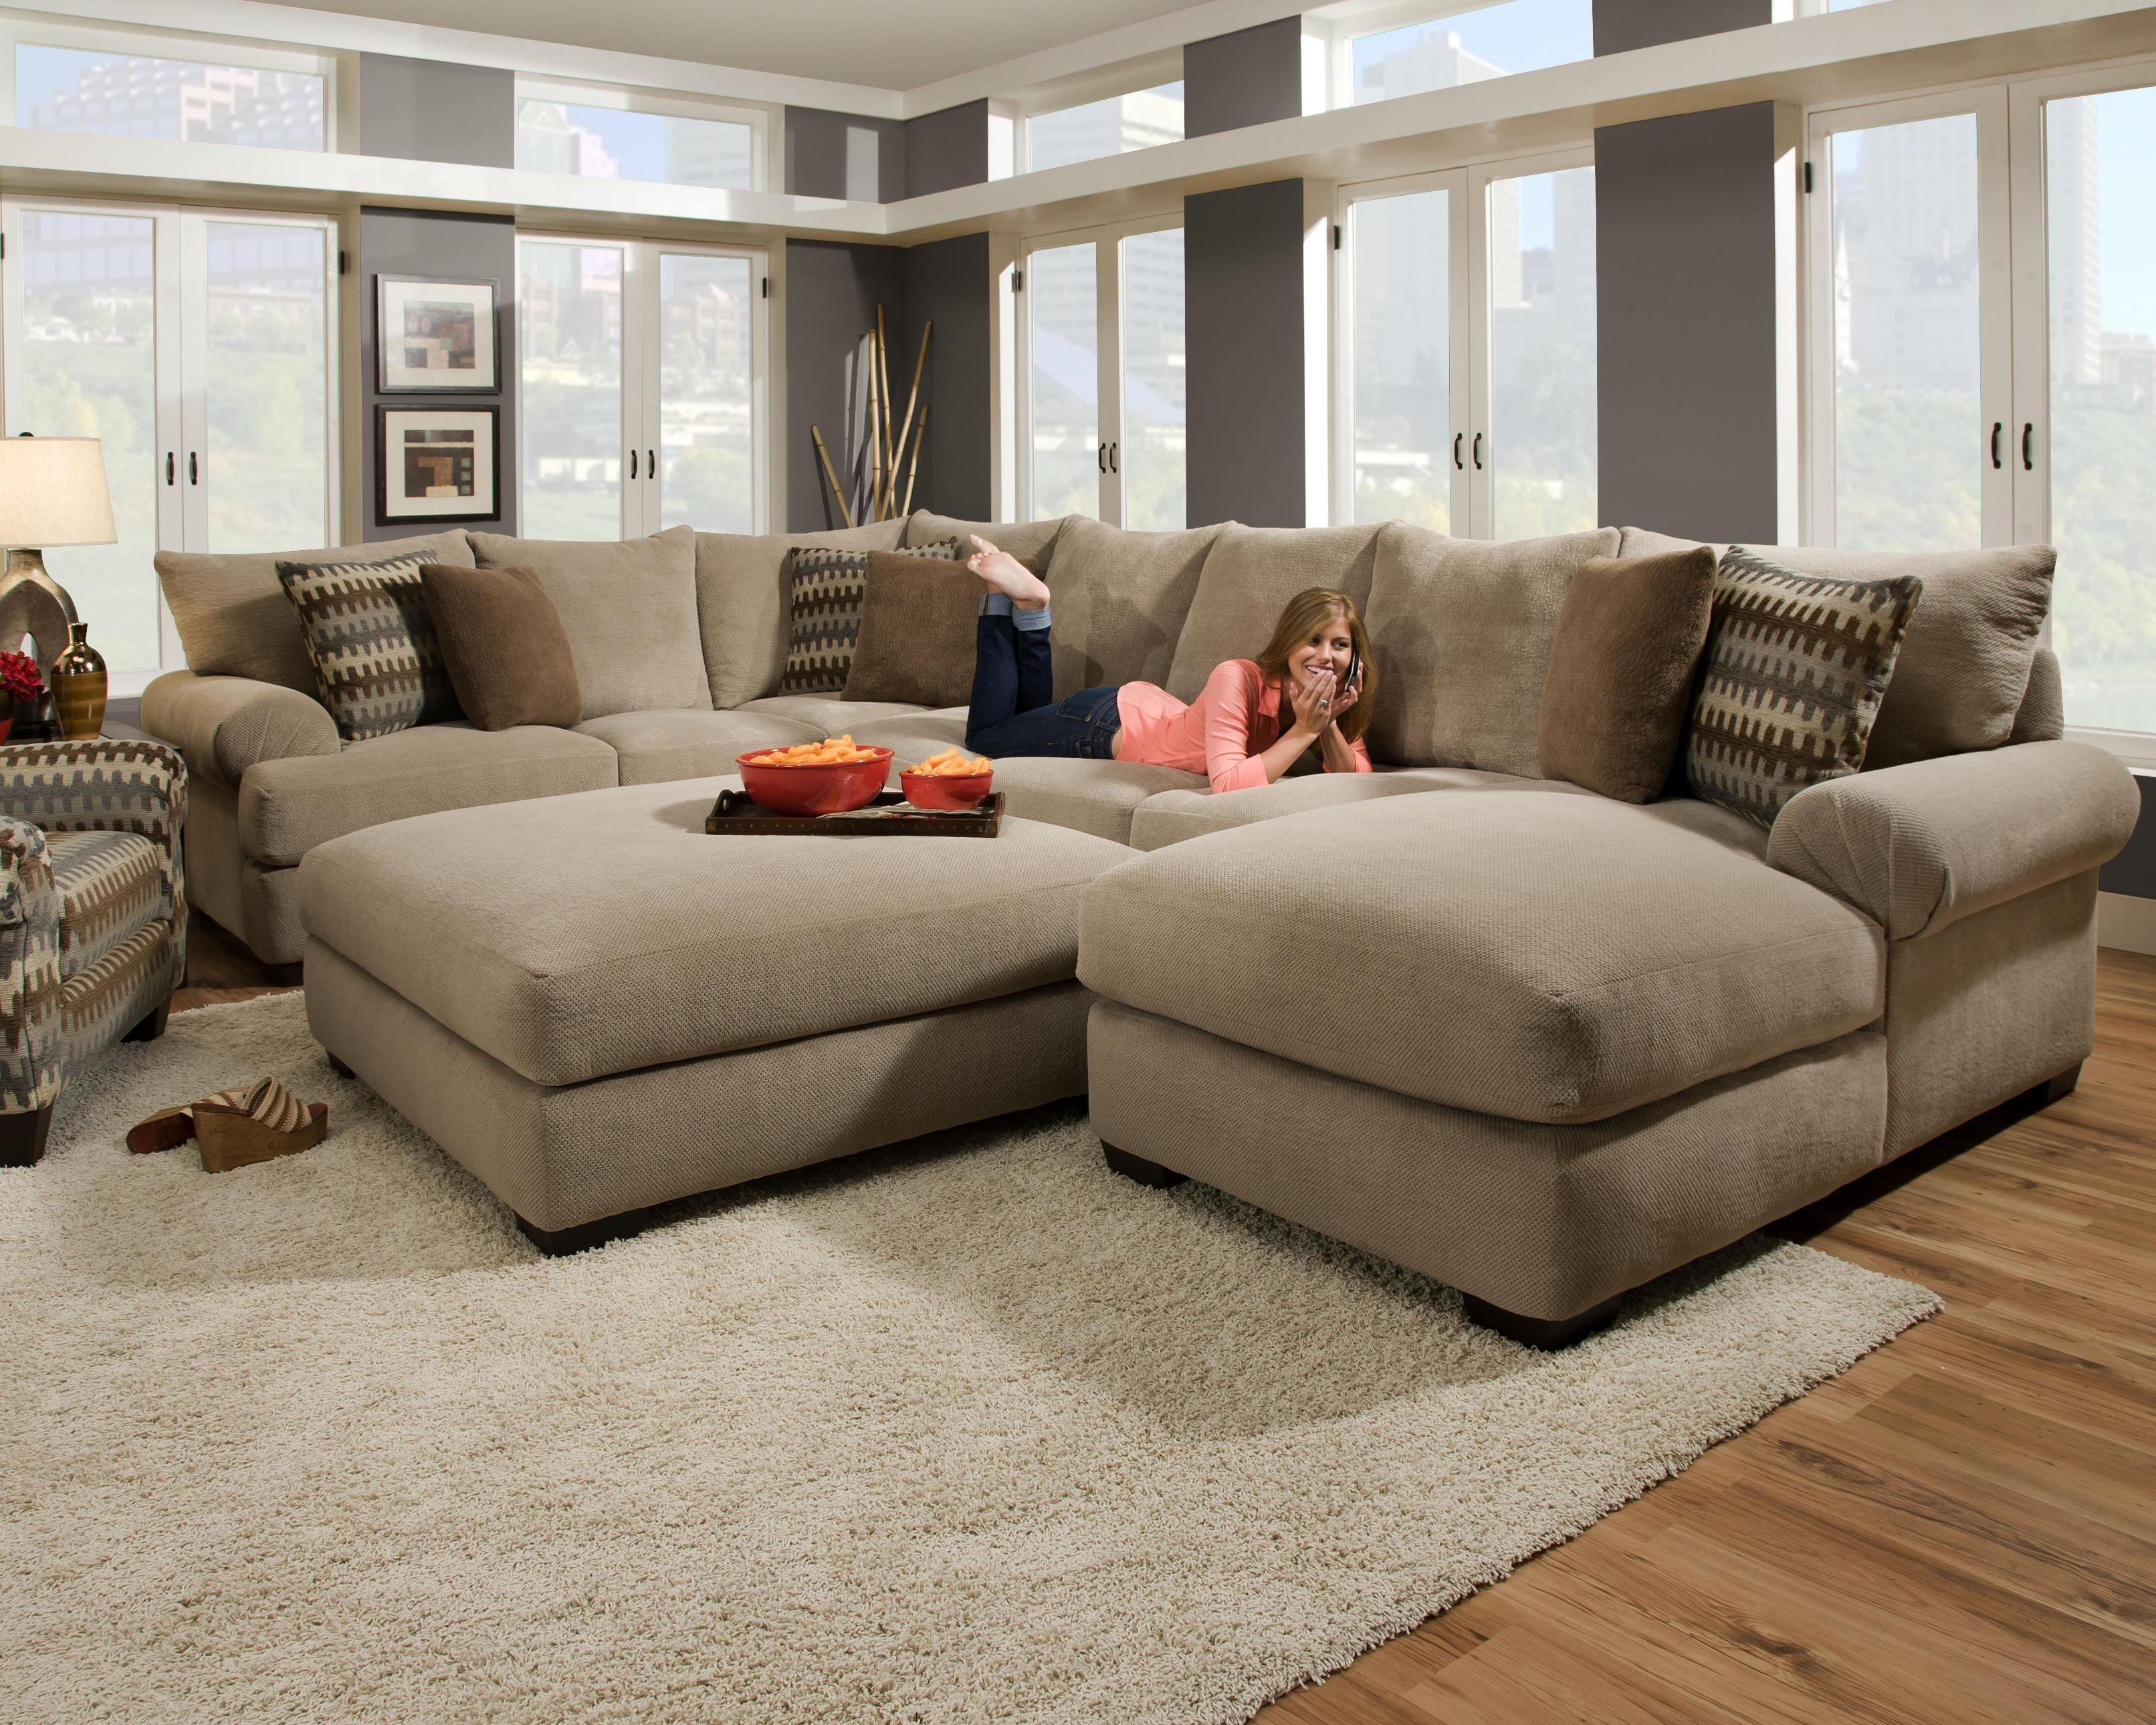 Discount Sectional Sofas | Roselawnlutheran Pertaining To Discounted Sectional Sofa (View 4 of 15)